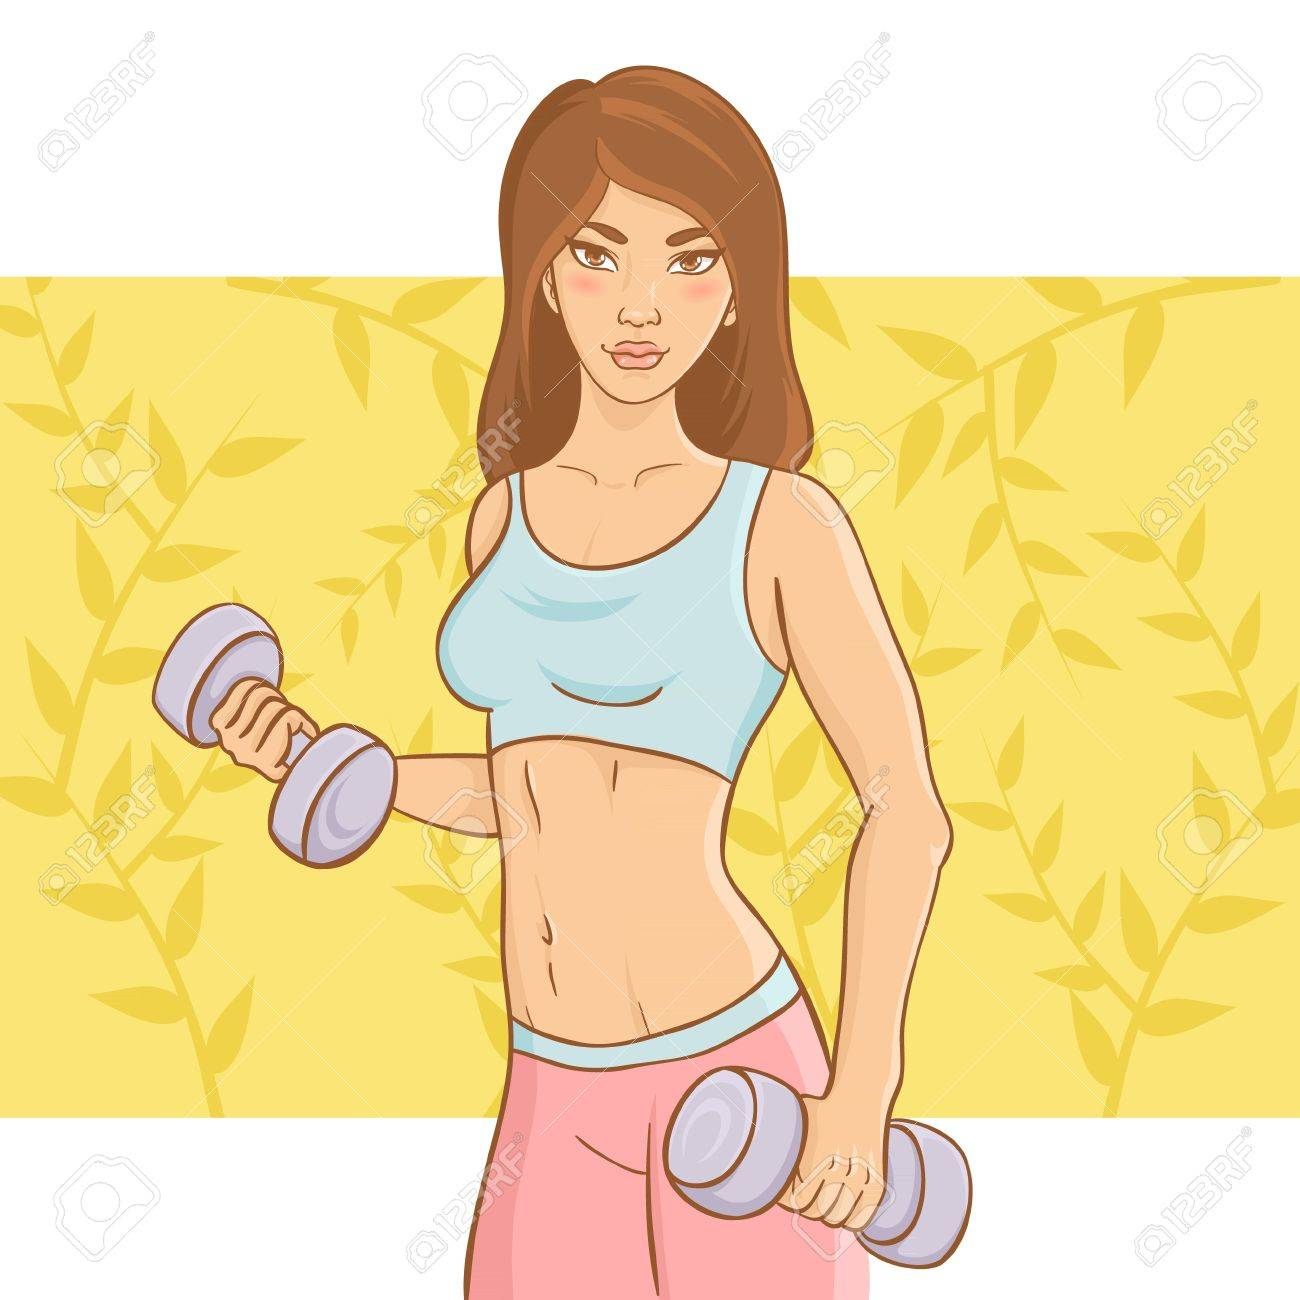 Sporty beautiful girl doing a fitness workout with dumb-bell weights on a floral background Stock Vector - 13239114